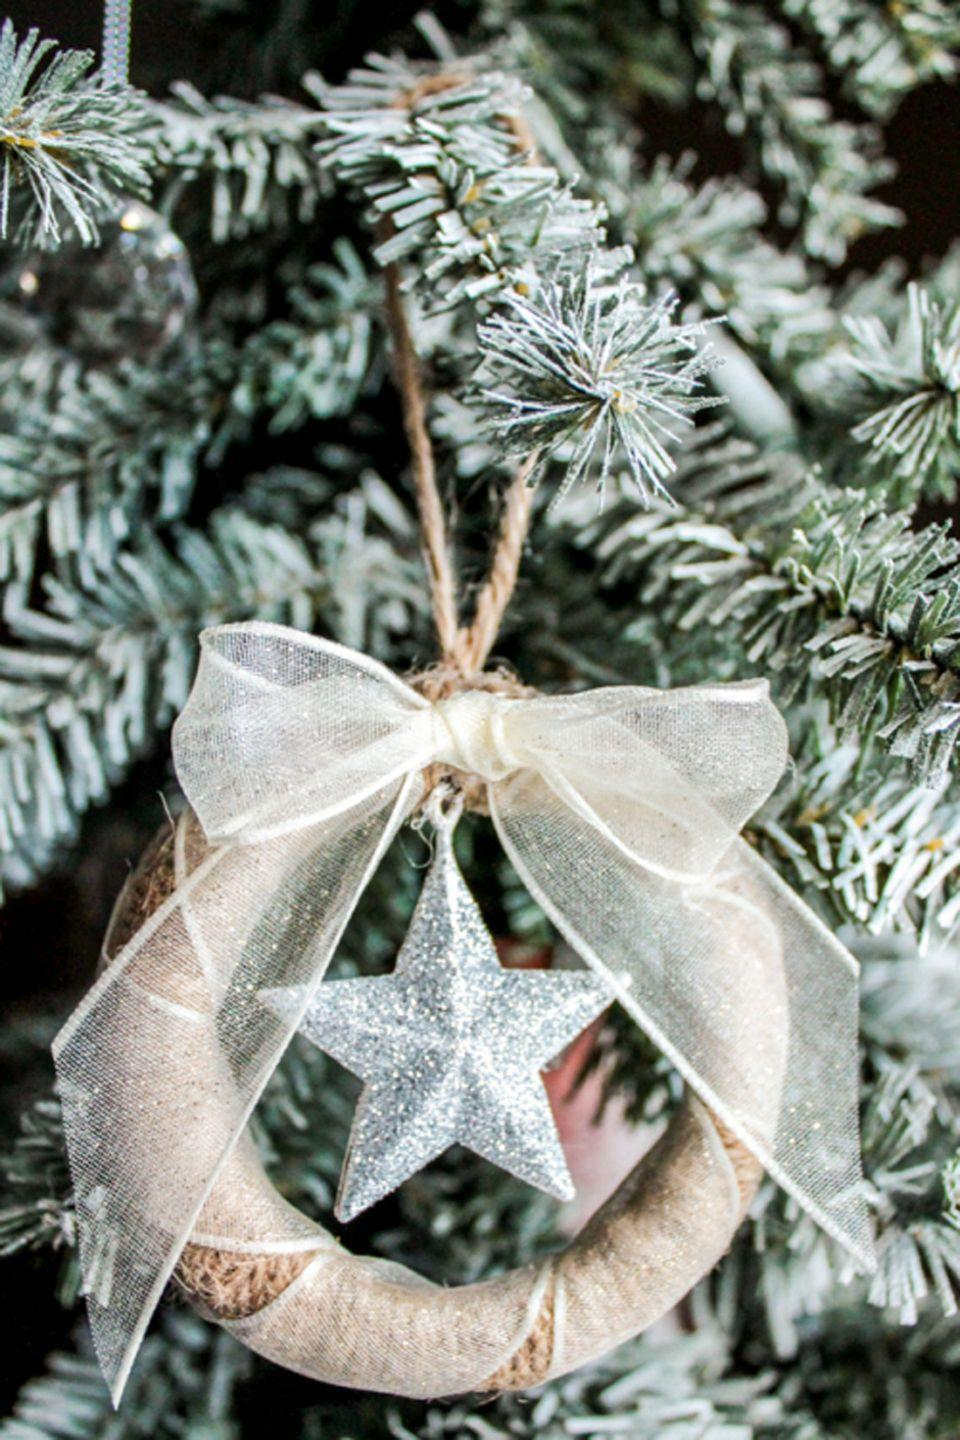 """<p>Mismatched lids missing their mates can become a new trash-to-treasure craft that will look great on your tree. How adorable is this decoration? </p><p><em><a href=""""http://domesticallyblissful.com/sparkling-star-mason-jar-lid-ornament/"""" rel=""""nofollow noopener"""" target=""""_blank"""" data-ylk=""""slk:Get the tutorial at Domestically Blissful »"""" class=""""link rapid-noclick-resp"""">Get the tutorial at Domestically Blissful »</a> </em></p><p><strong>RELATED:</strong> <a href=""""https://www.goodhousekeeping.com/holidays/christmas-ideas/g2993/mason-jar-christmas-crafts/"""" rel=""""nofollow noopener"""" target=""""_blank"""" data-ylk=""""slk:Mason Jar Christmas Crafts to Make as Gifts (or Keep for Yourself)"""" class=""""link rapid-noclick-resp"""">Mason Jar Christmas Crafts to Make as Gifts (or Keep for Yourself)</a></p>"""